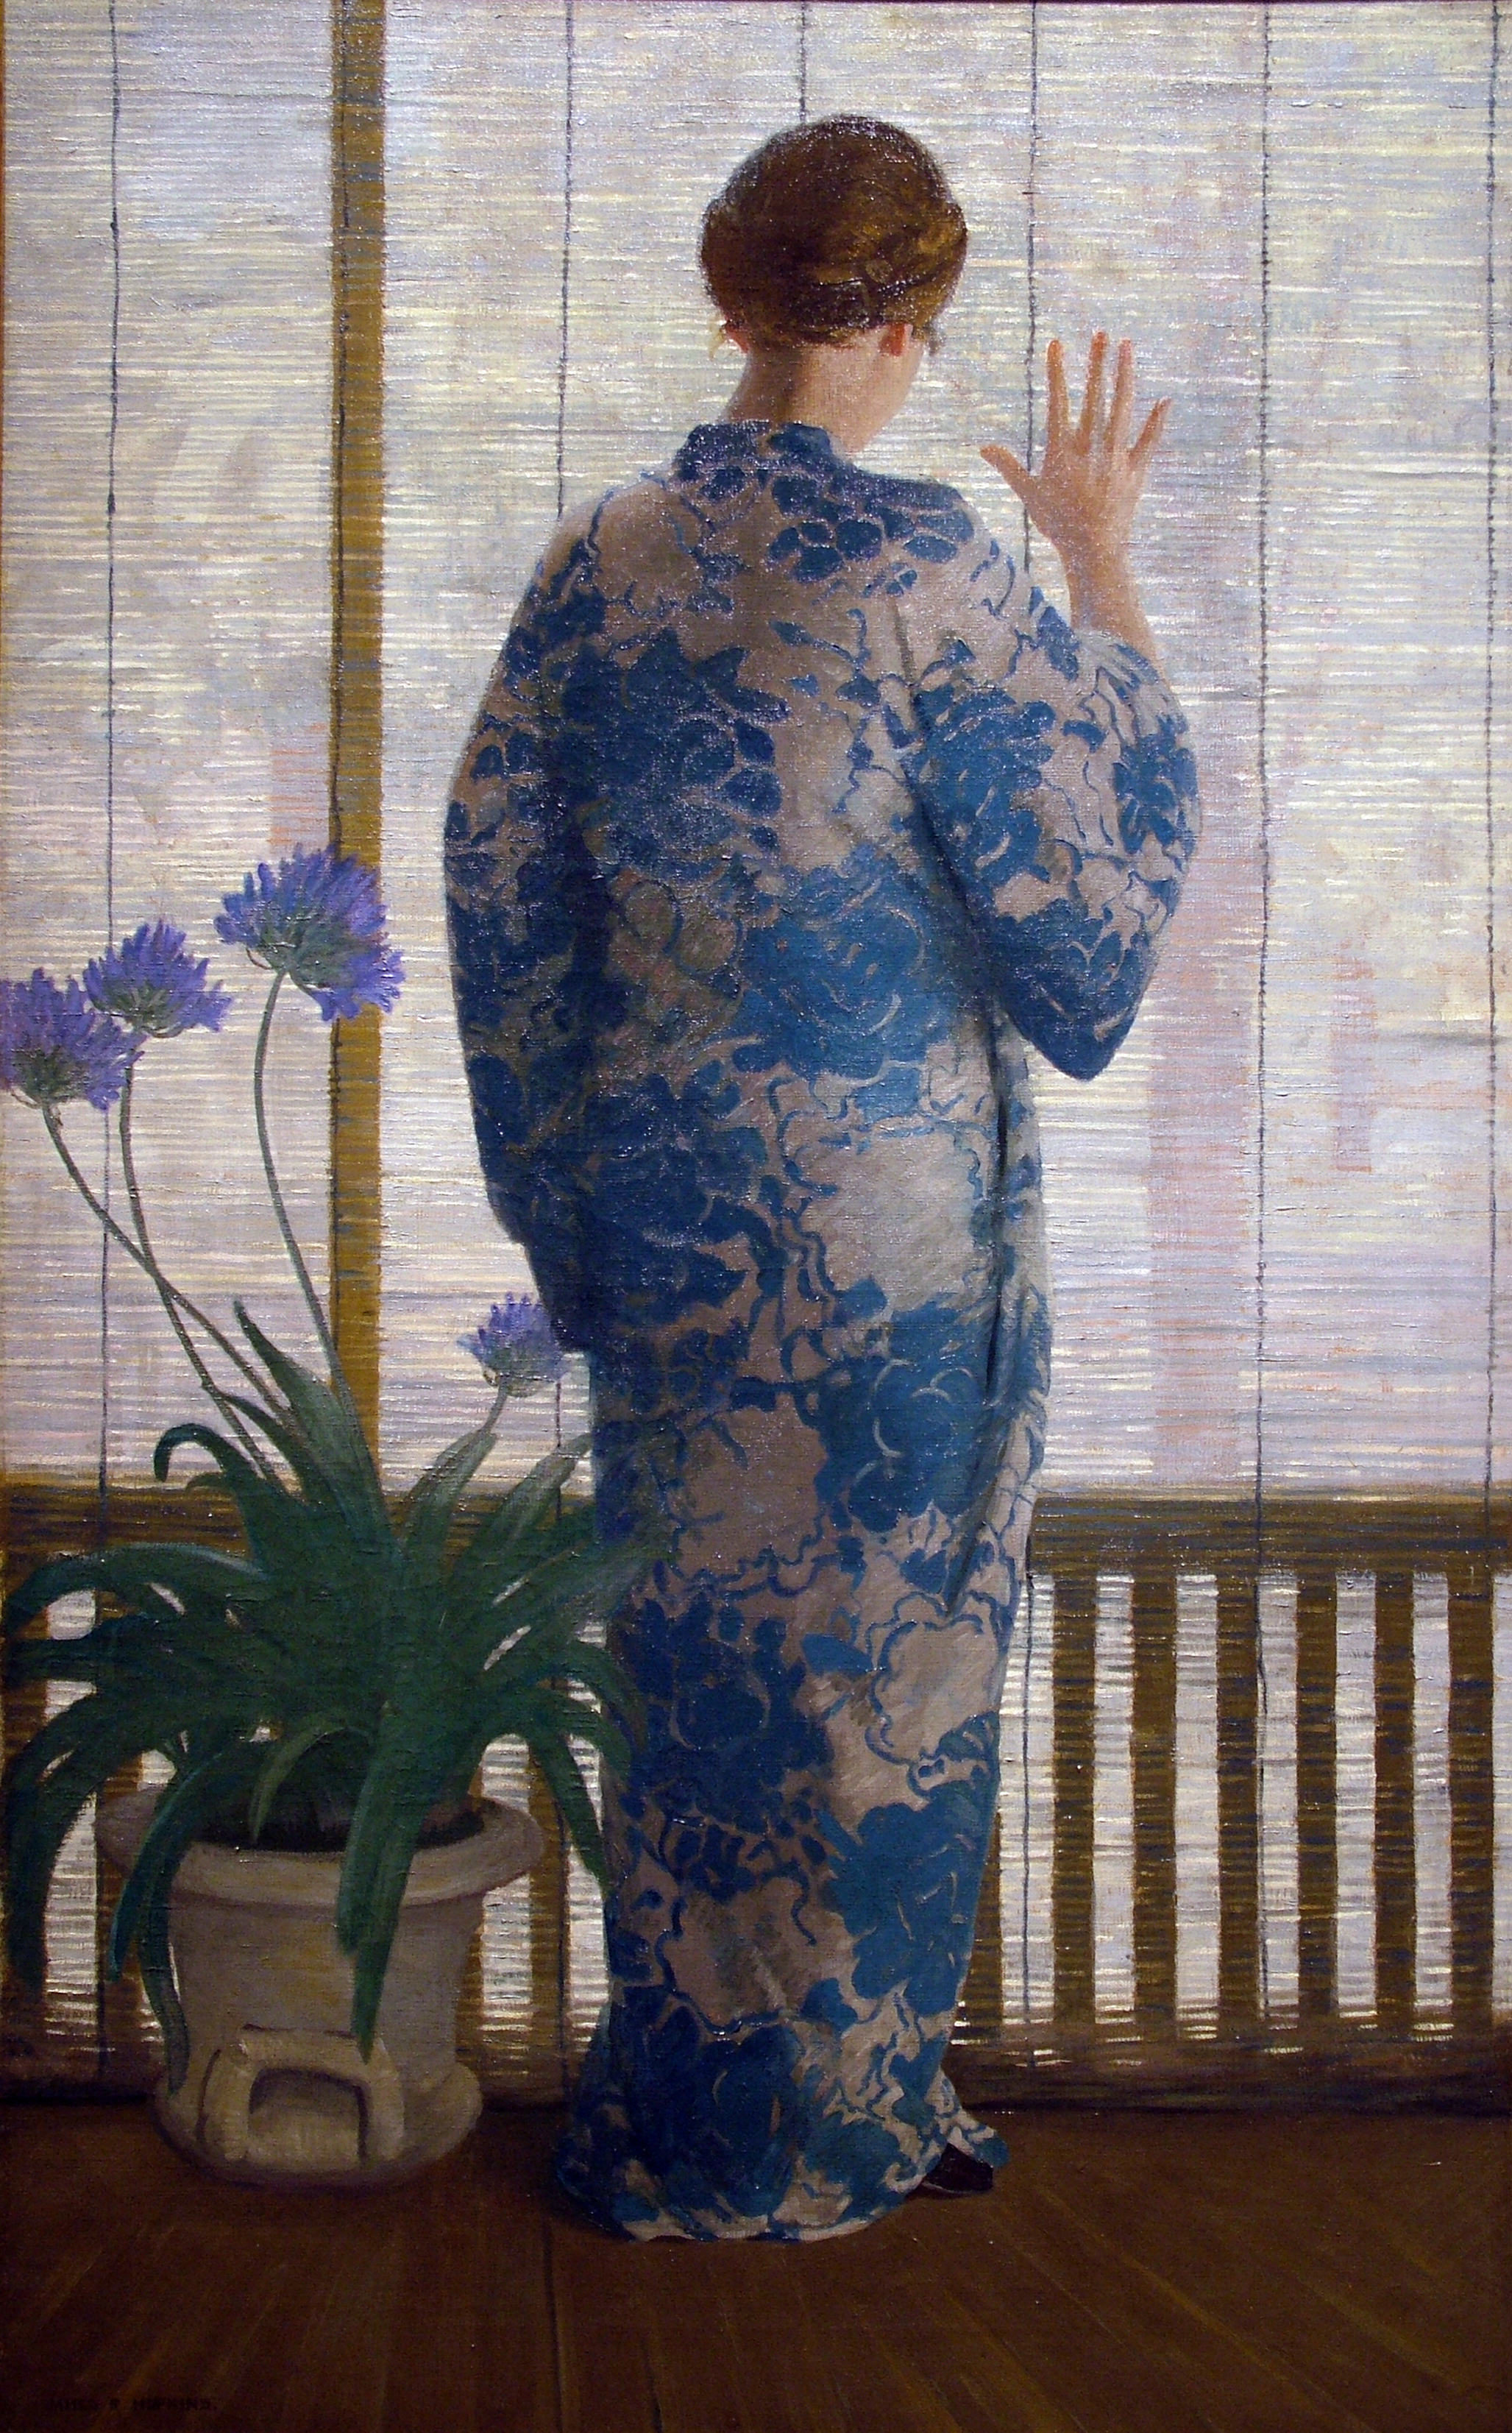 James R. Hopkins | THE BAMBOO SCREEN | oil on canvas | 51-3/8 x 32"